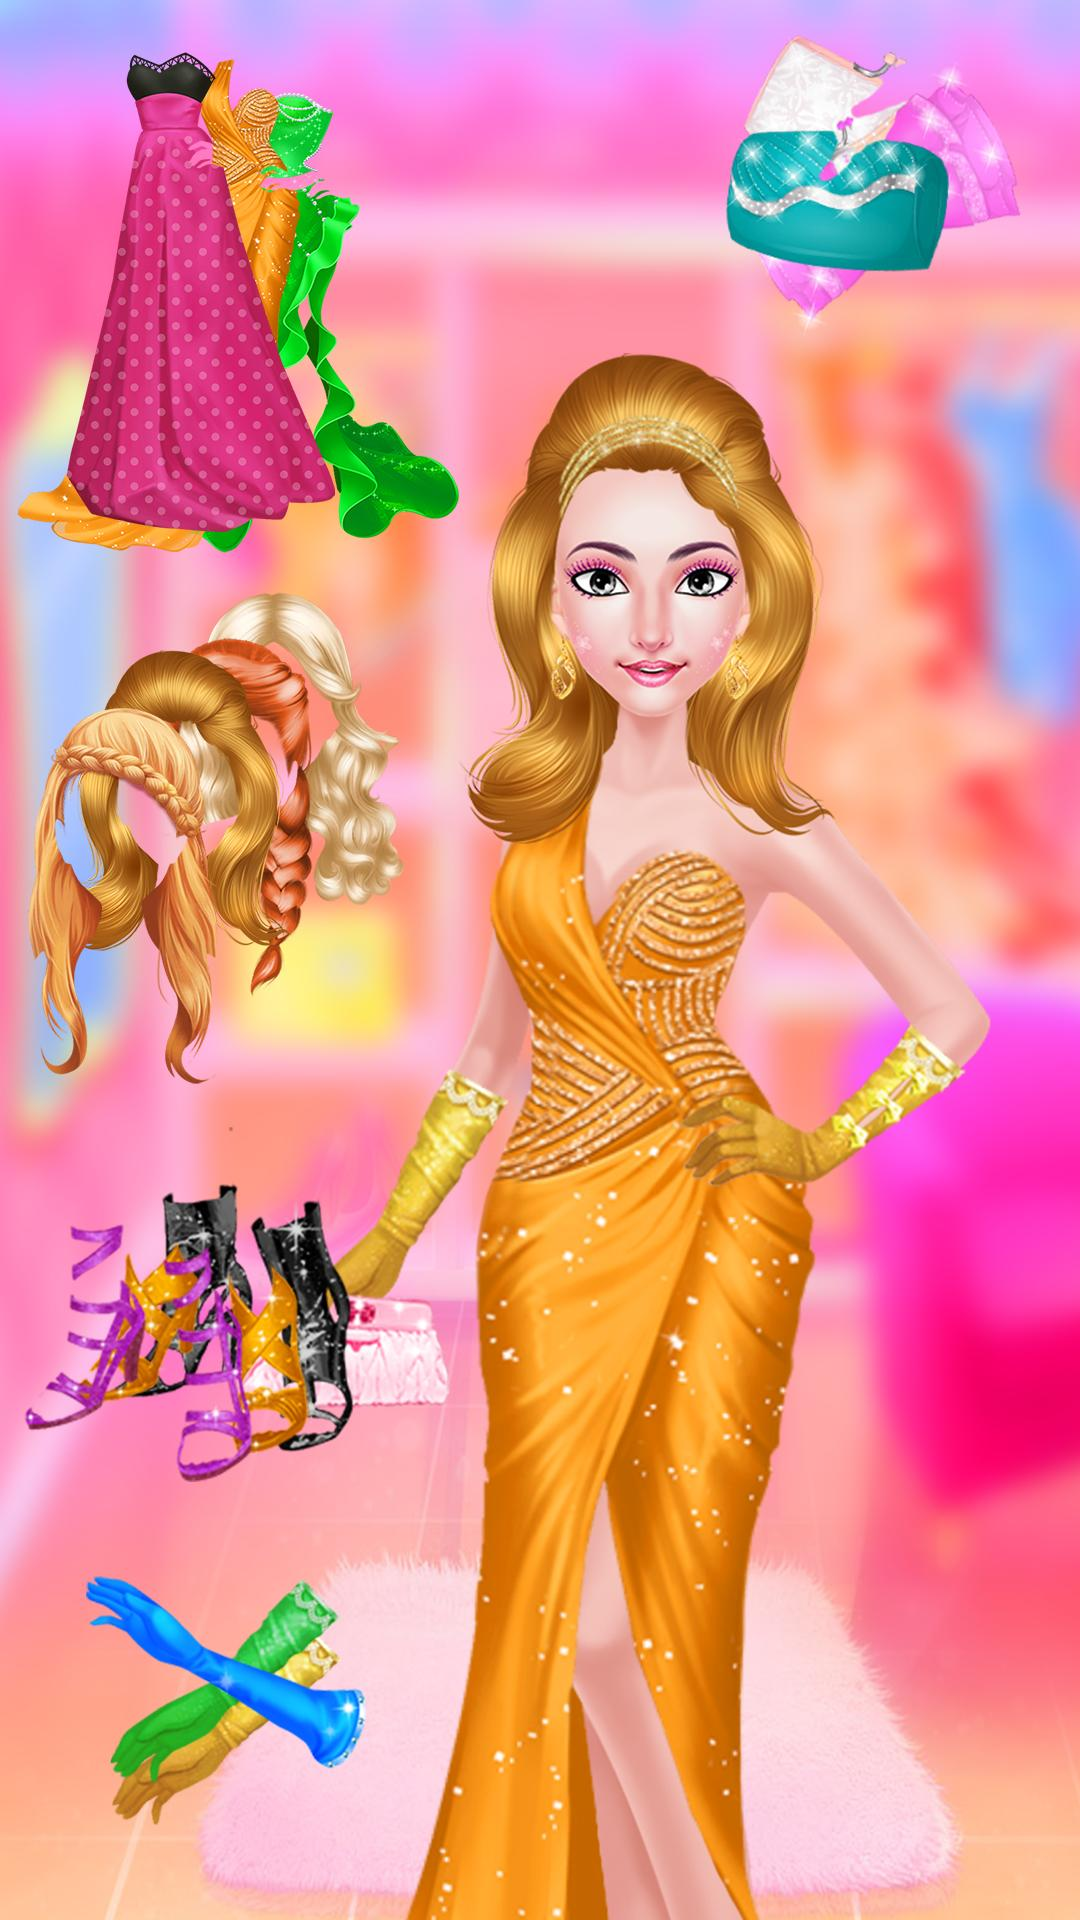 Fashion Studio Dress Up Game For Android Apk Download